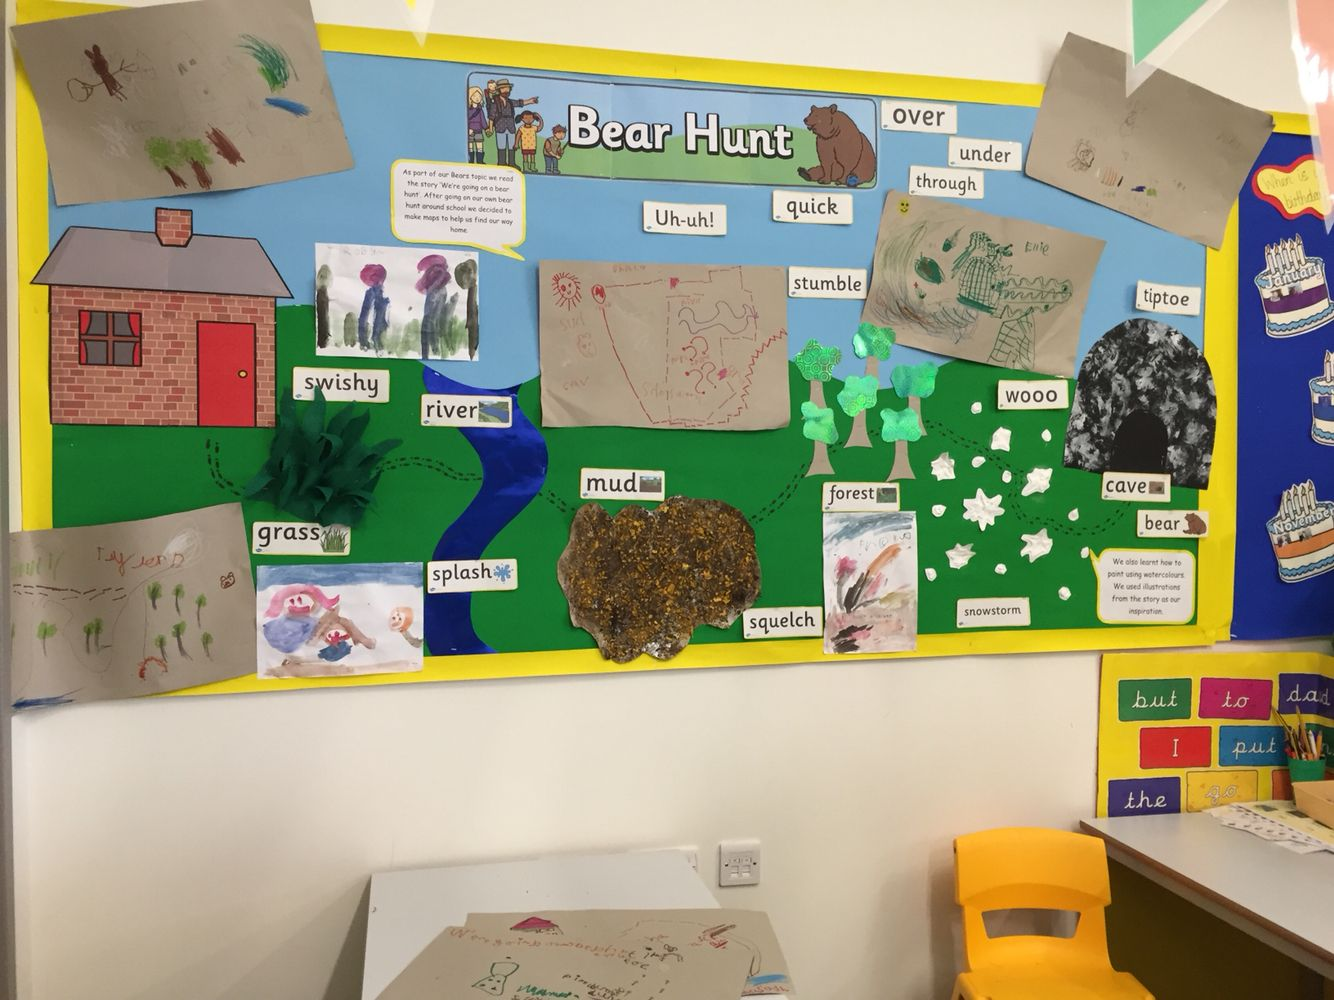 Bear Hunt Display With Maps And Art Work